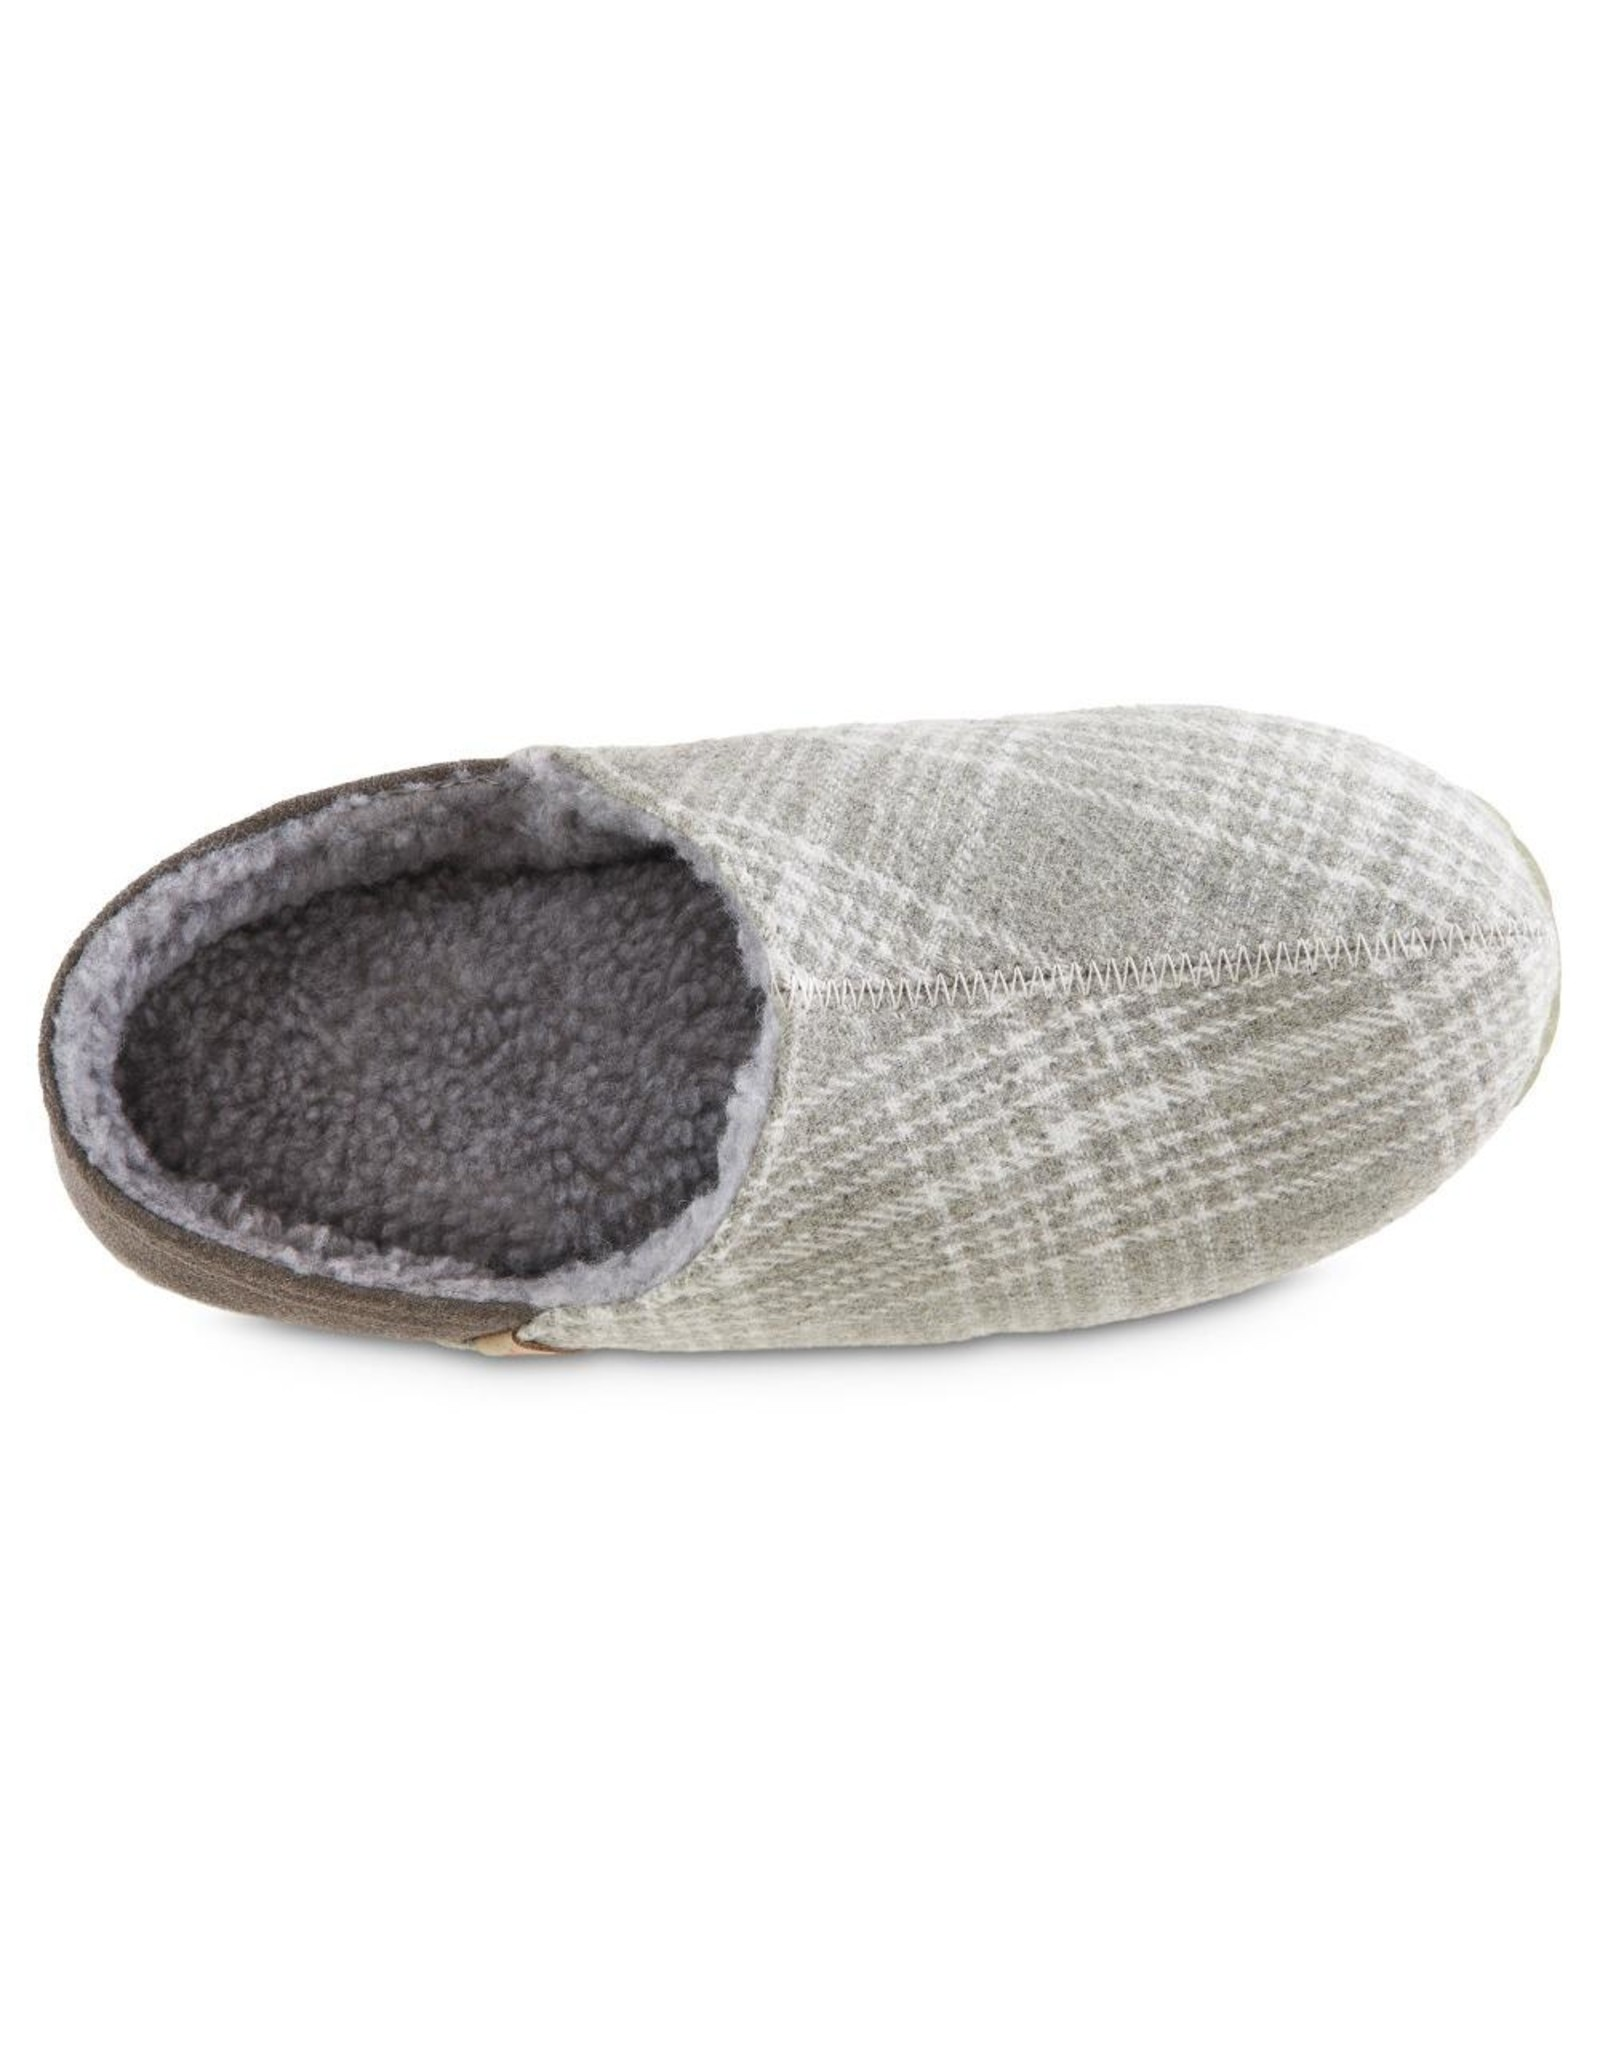 ACORN WOMEN'S ALGAE-INFUSED PARKER SLIPPERS-GRAY